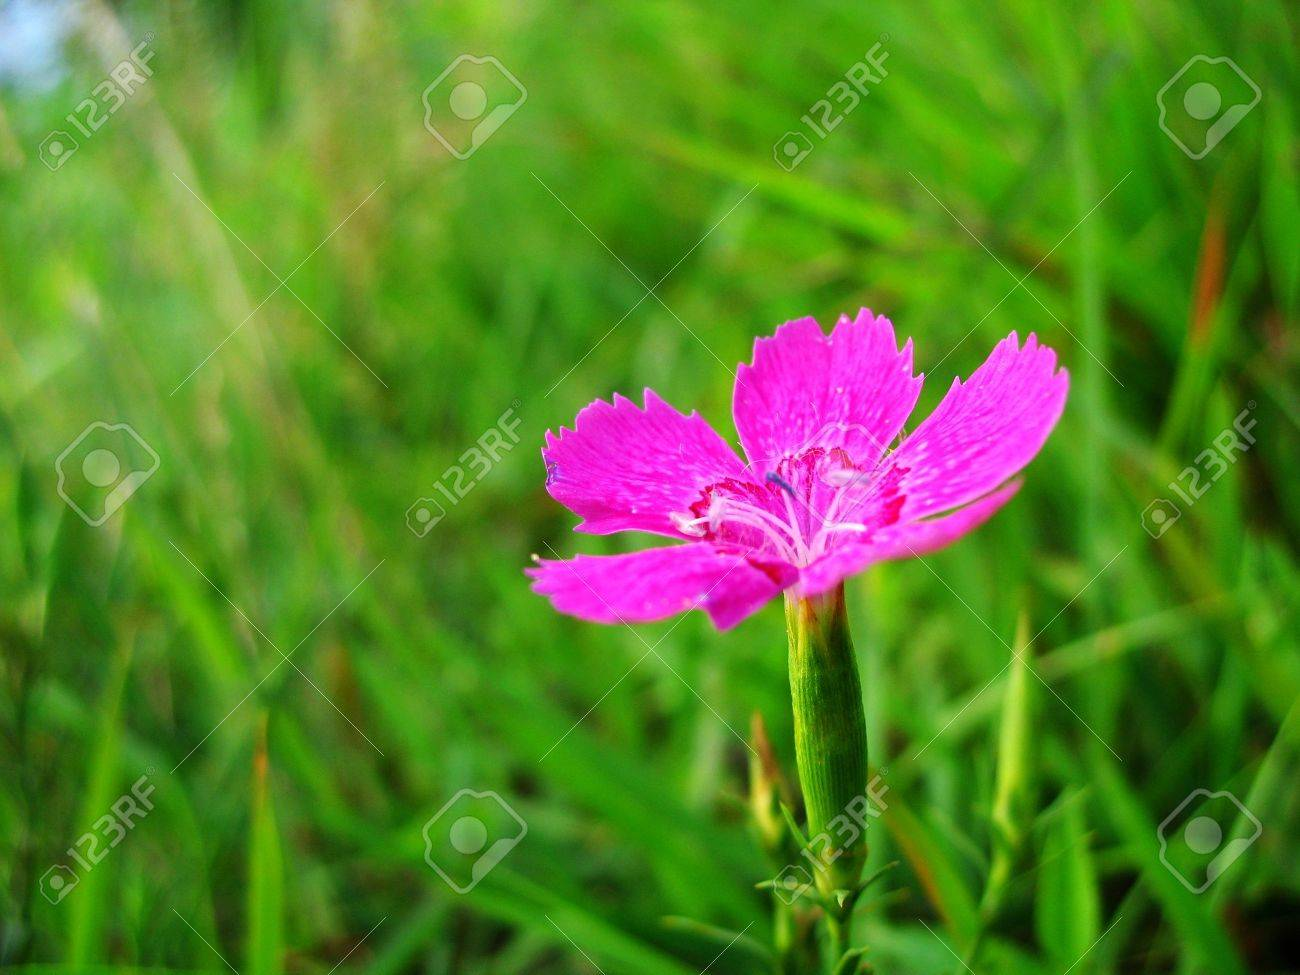 Nature Of Some Beautiful Flowers Stock Photo, Picture And Royalty ...